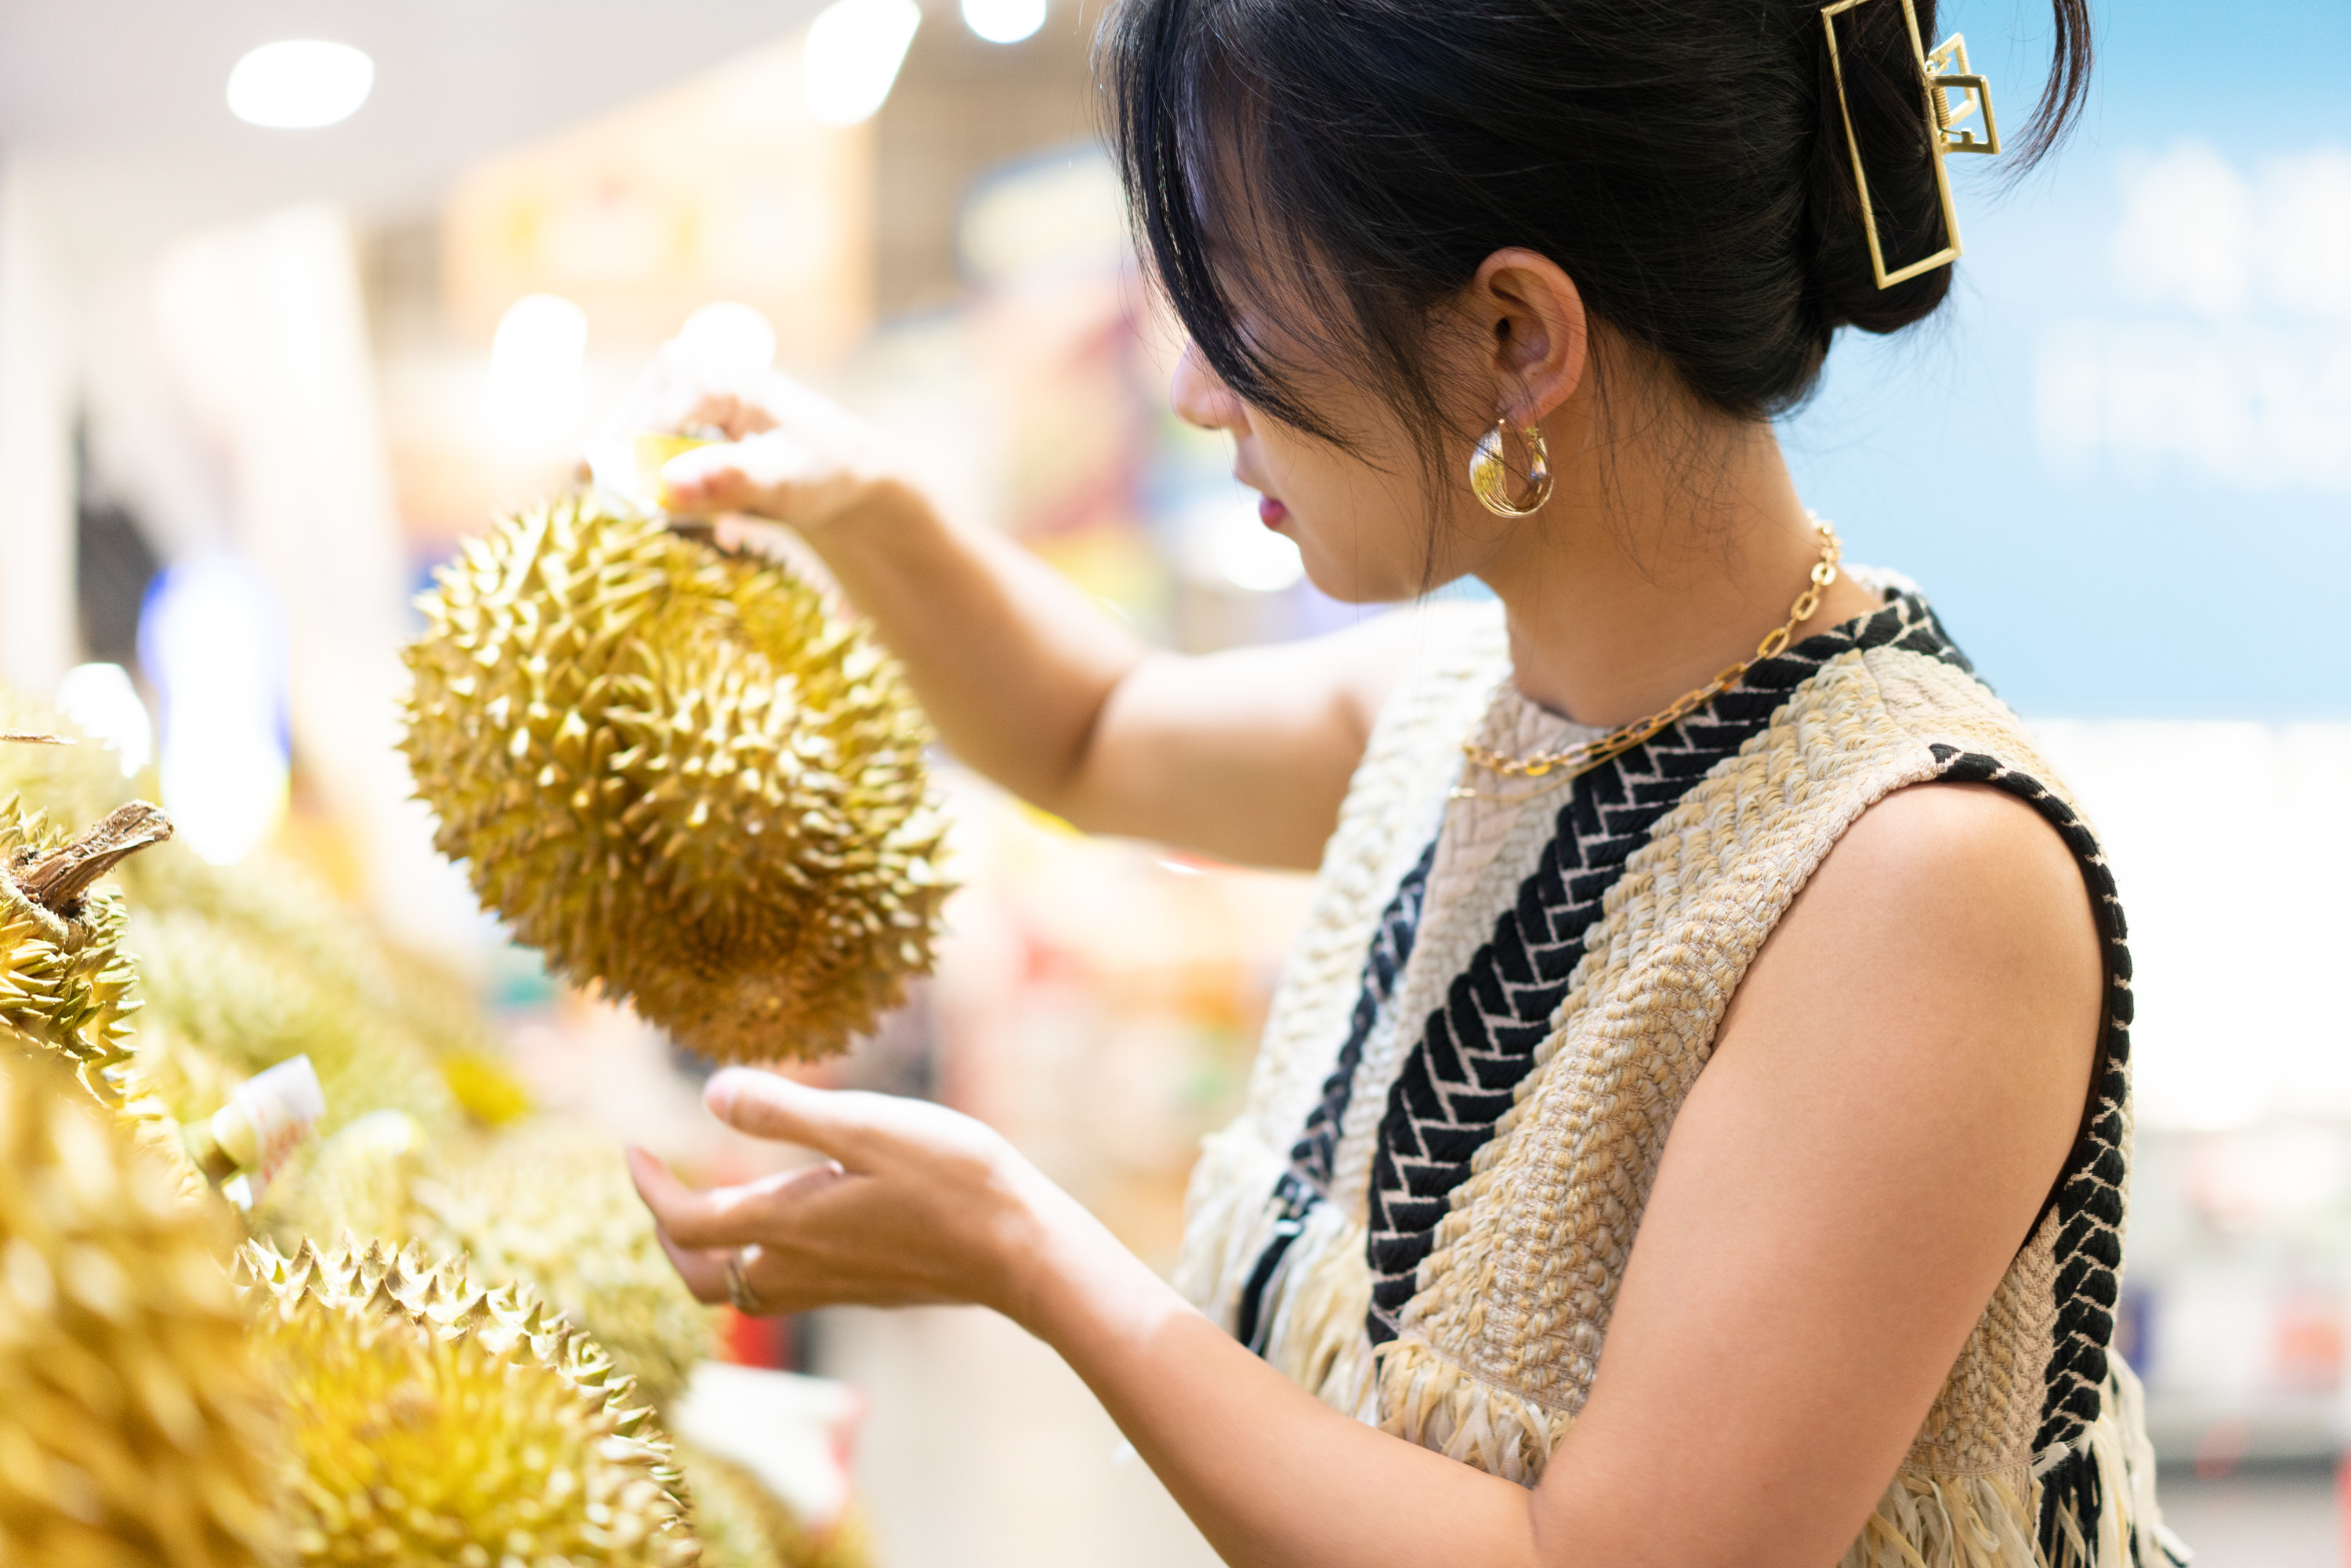 A woman holds up a durian